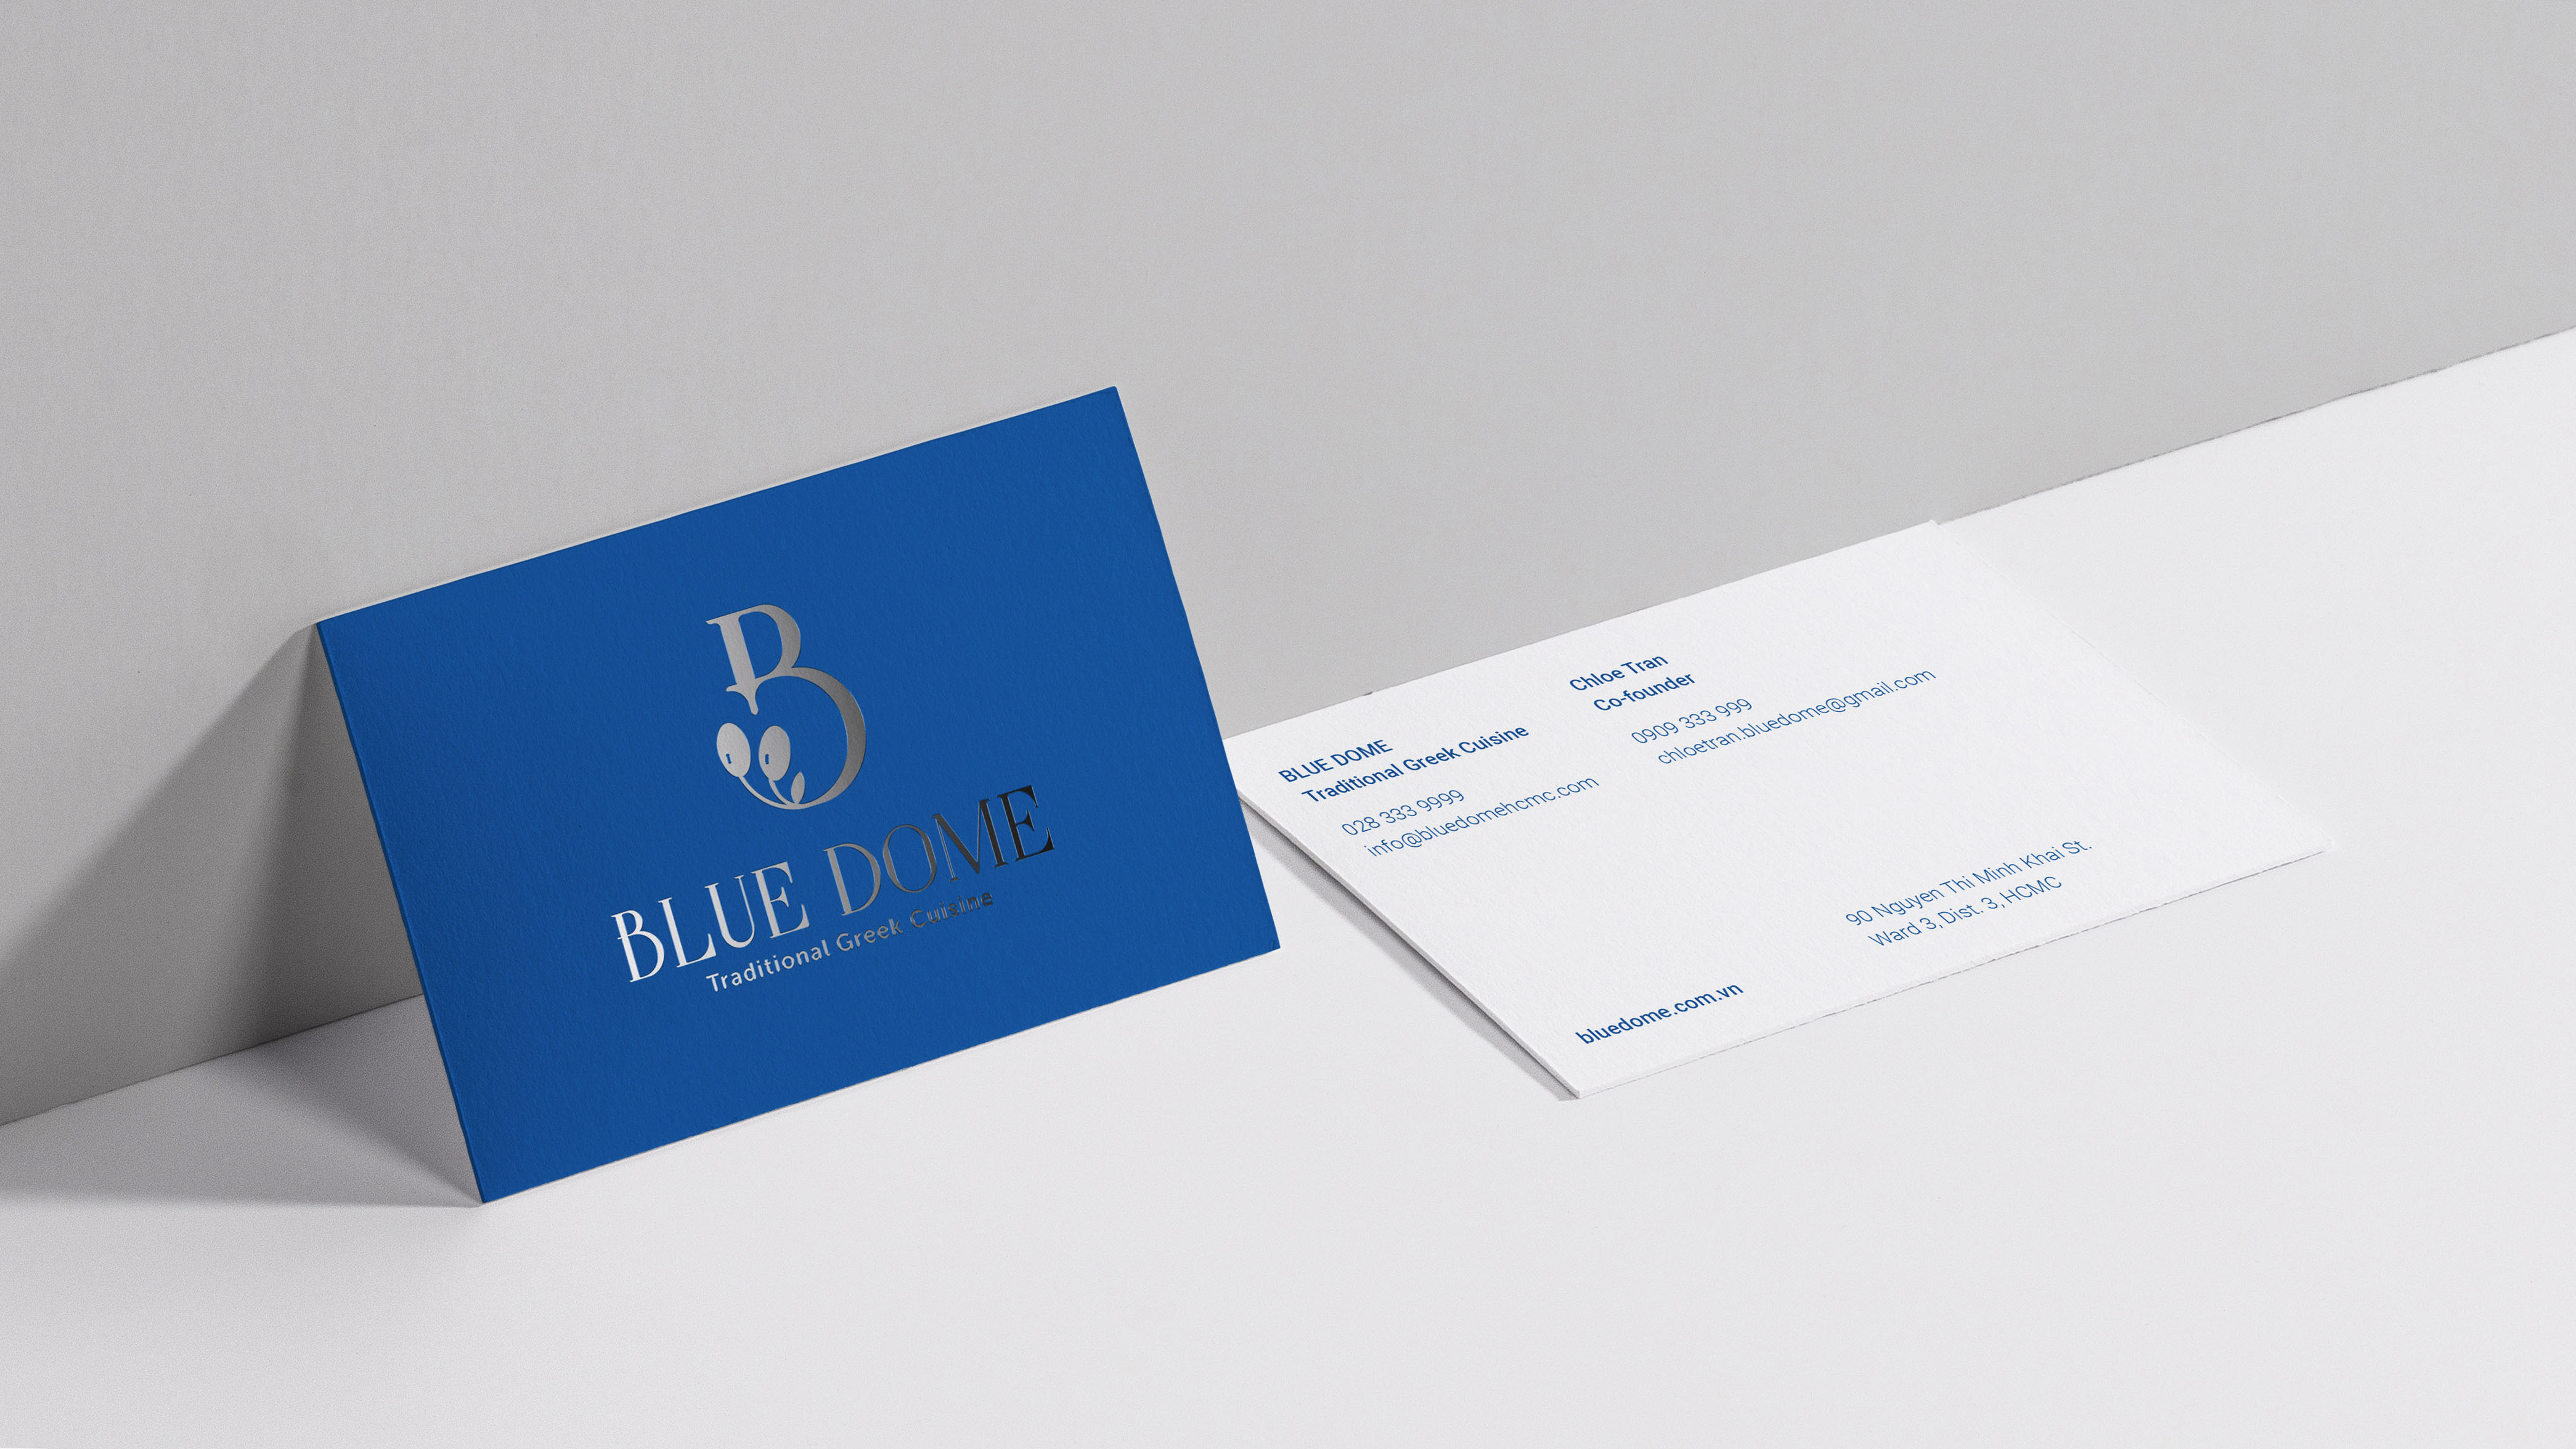 Blue Dome Traditional Greek Cuisine Branding by Son Nguyen